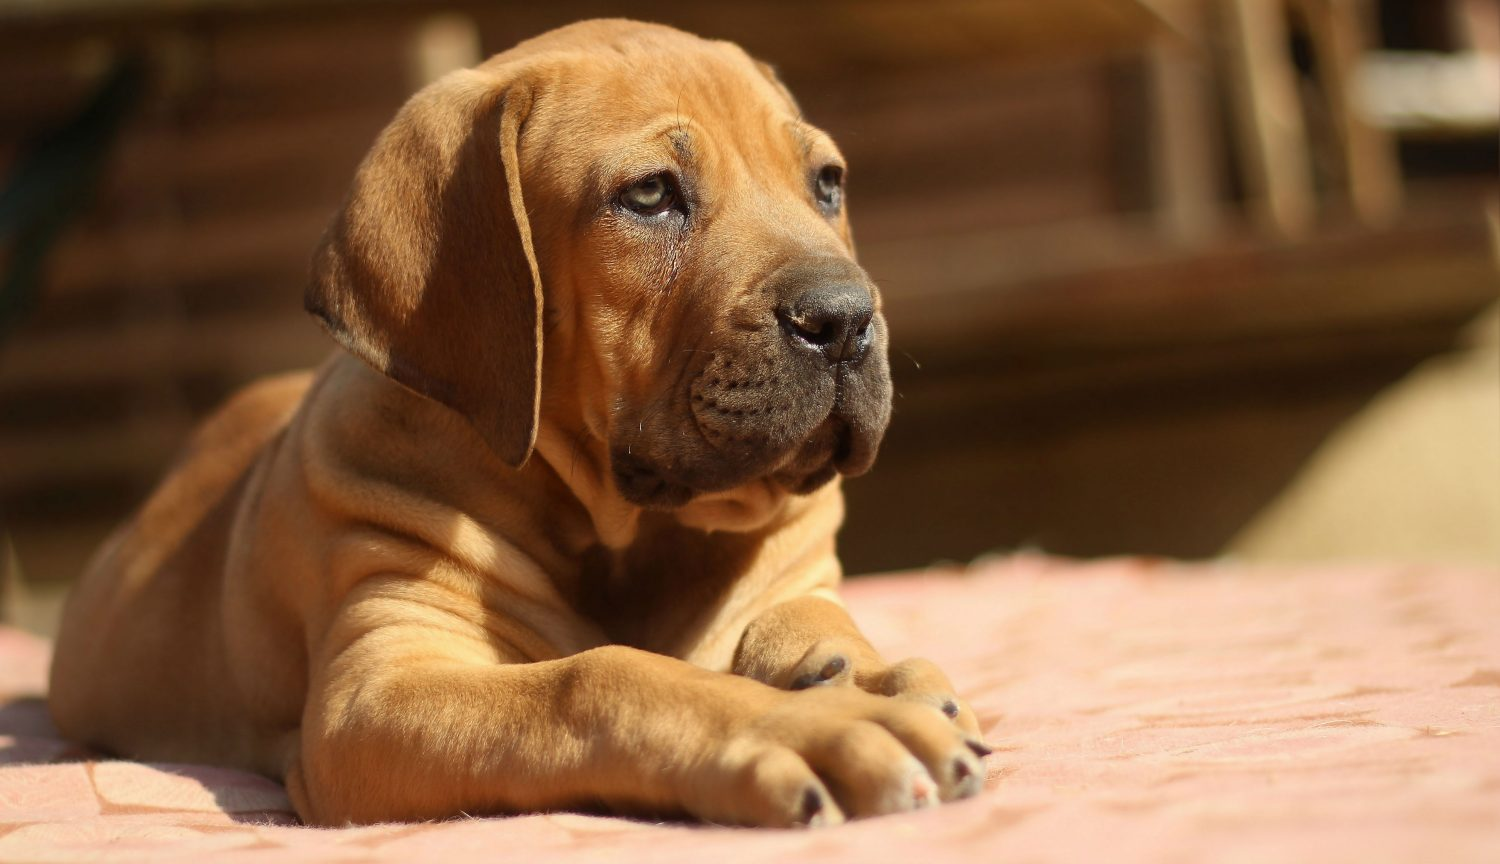 Does yellow-white discharge in my puppy's urine indicate juvenile vaginitis and if so, what should I do?